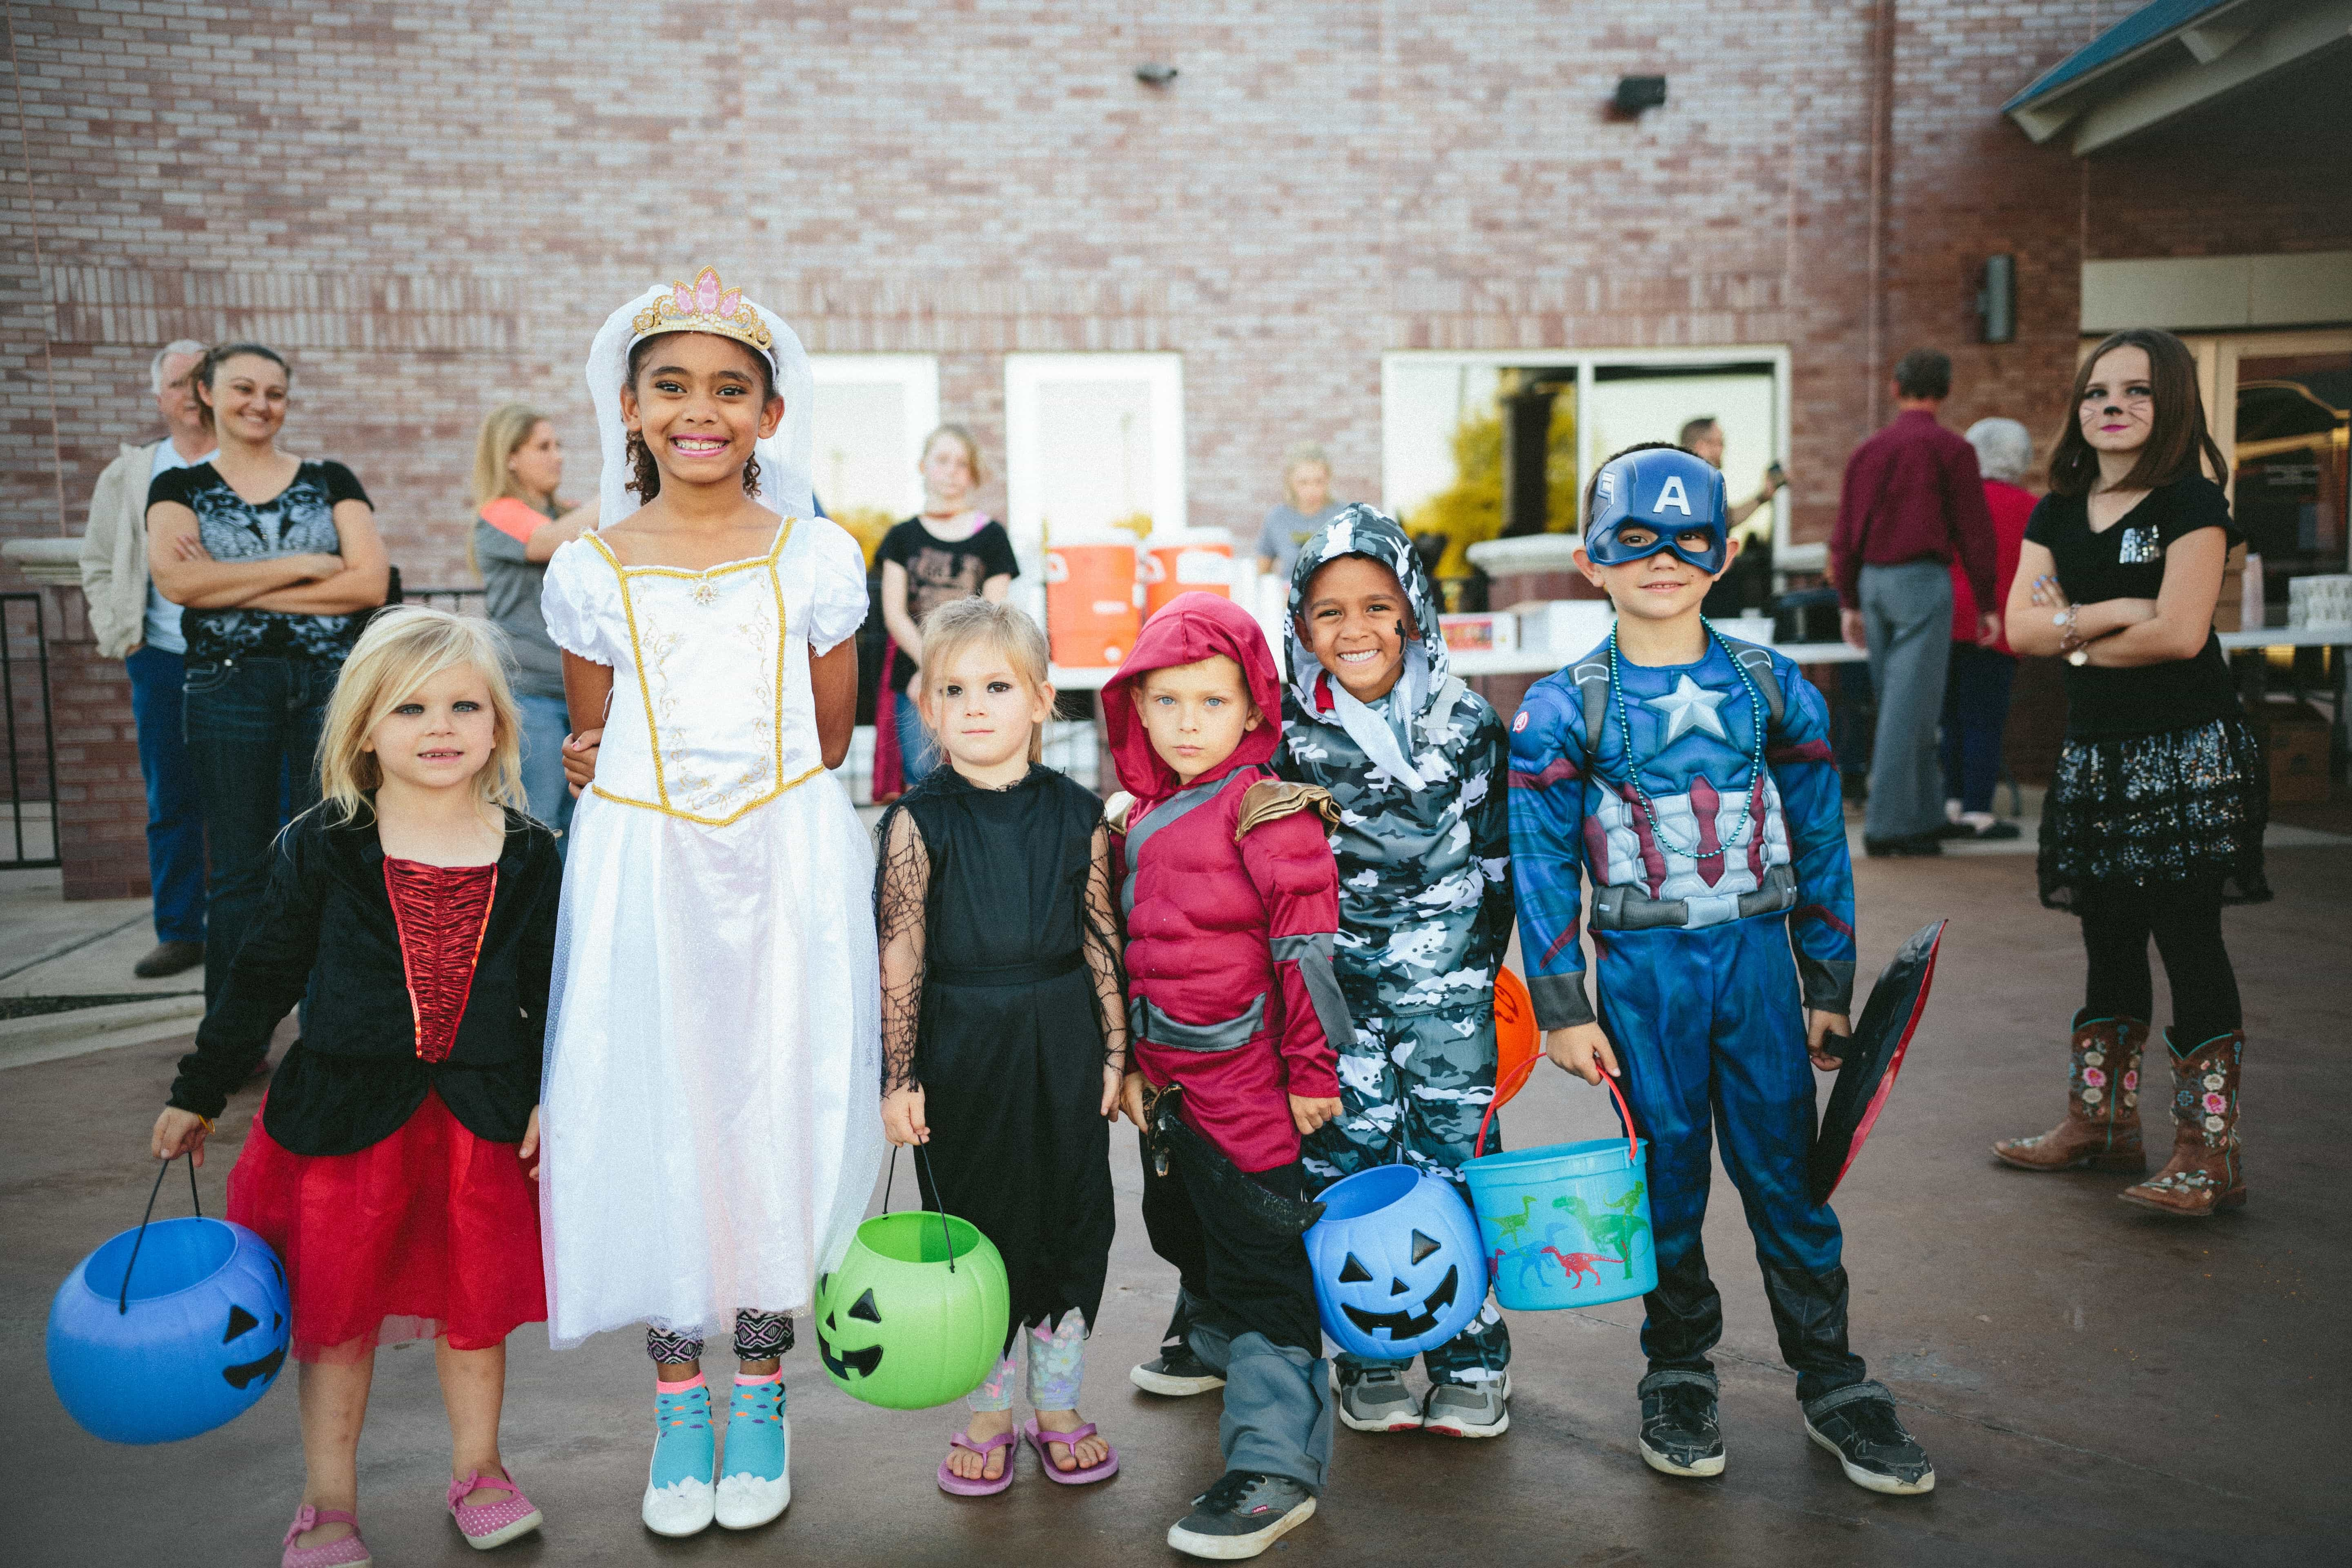 Editorial: costumes are not a platform